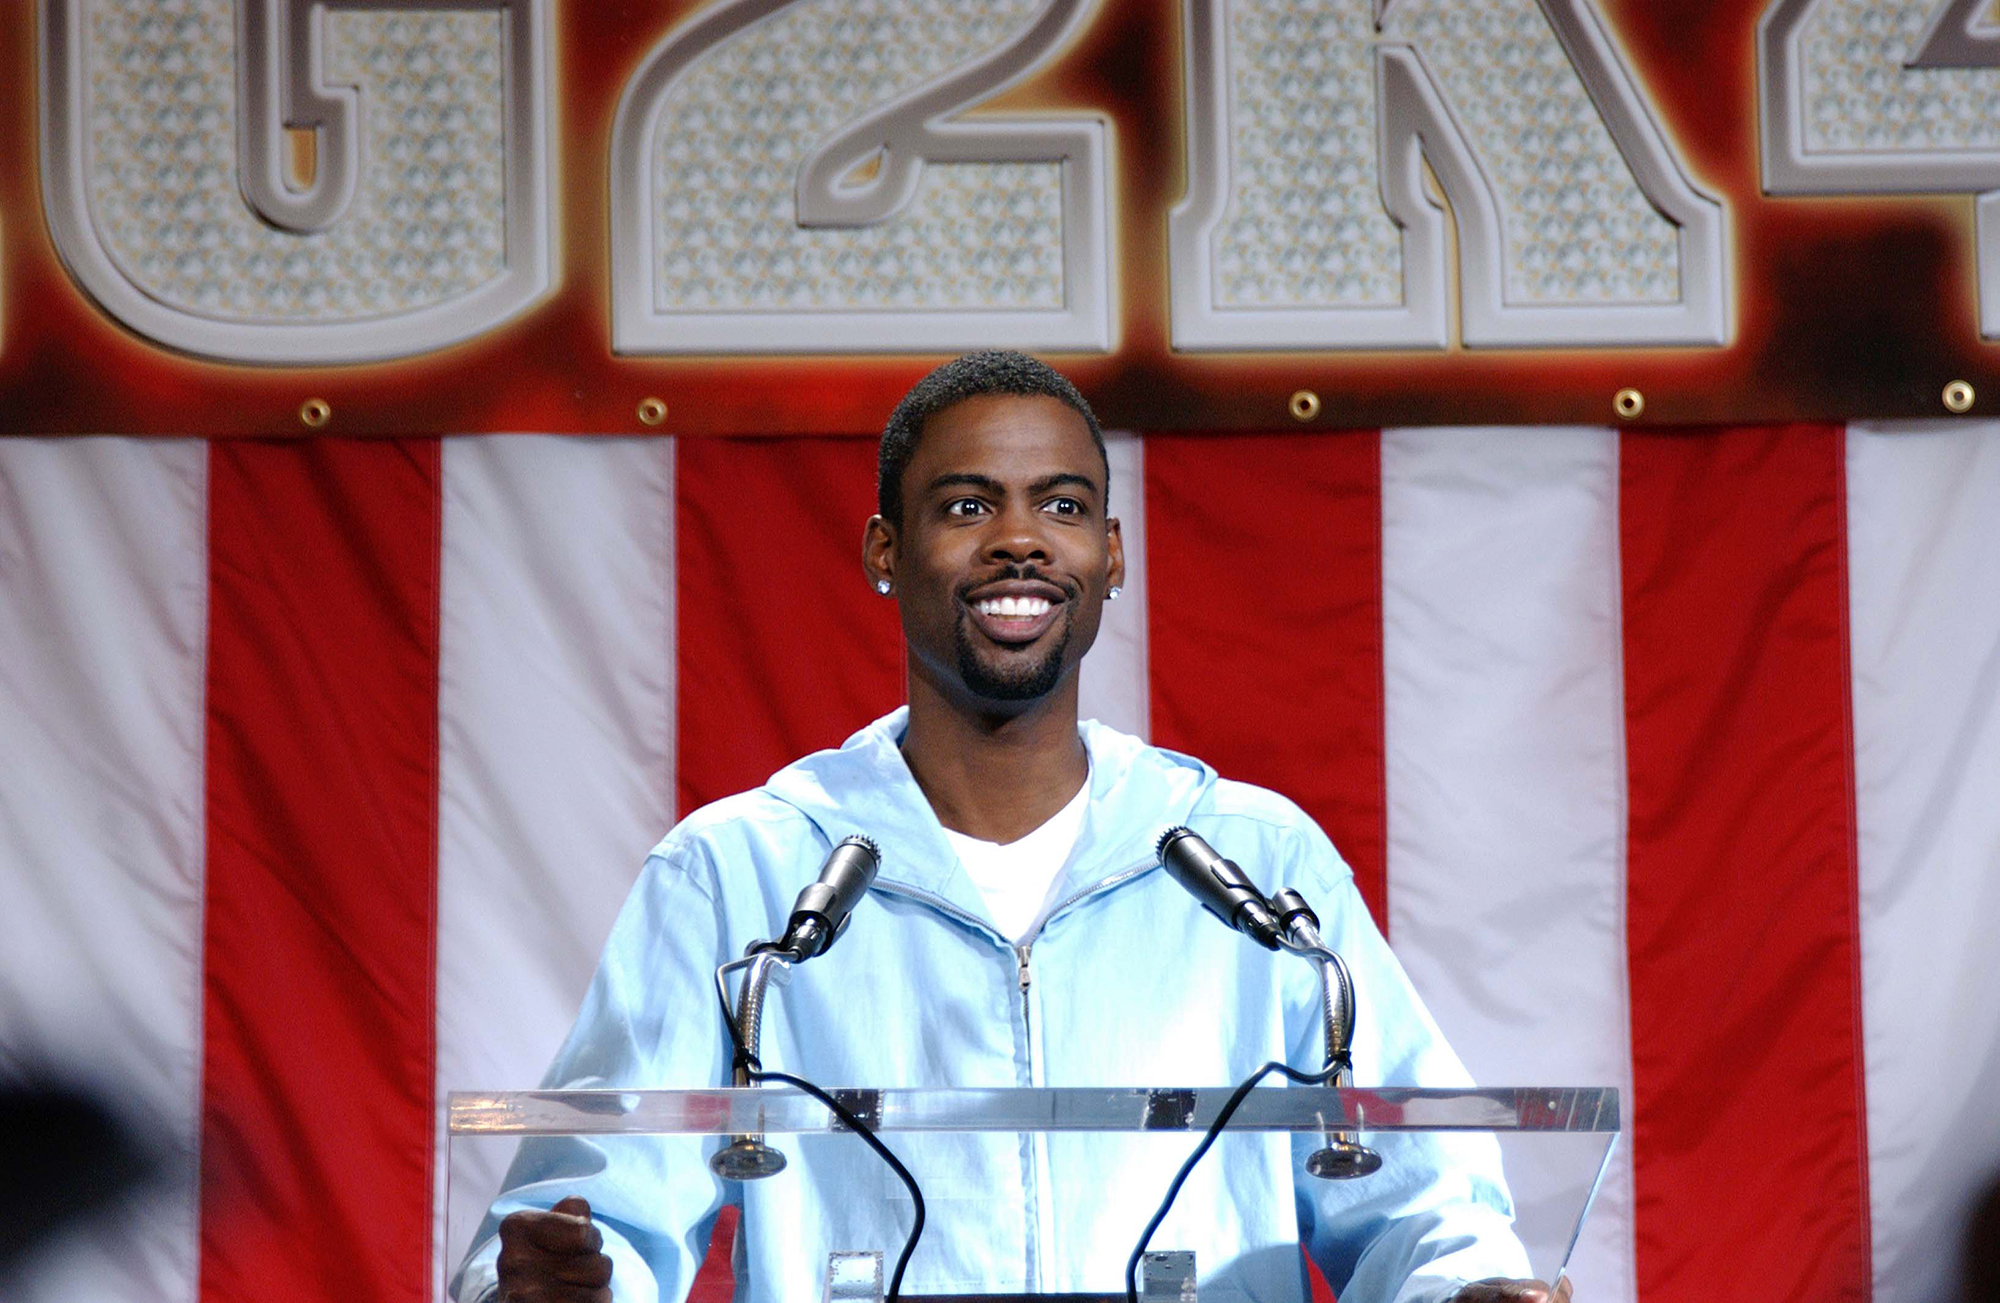 Chris Rock as Mays Gilliam in Head of State, 2003.